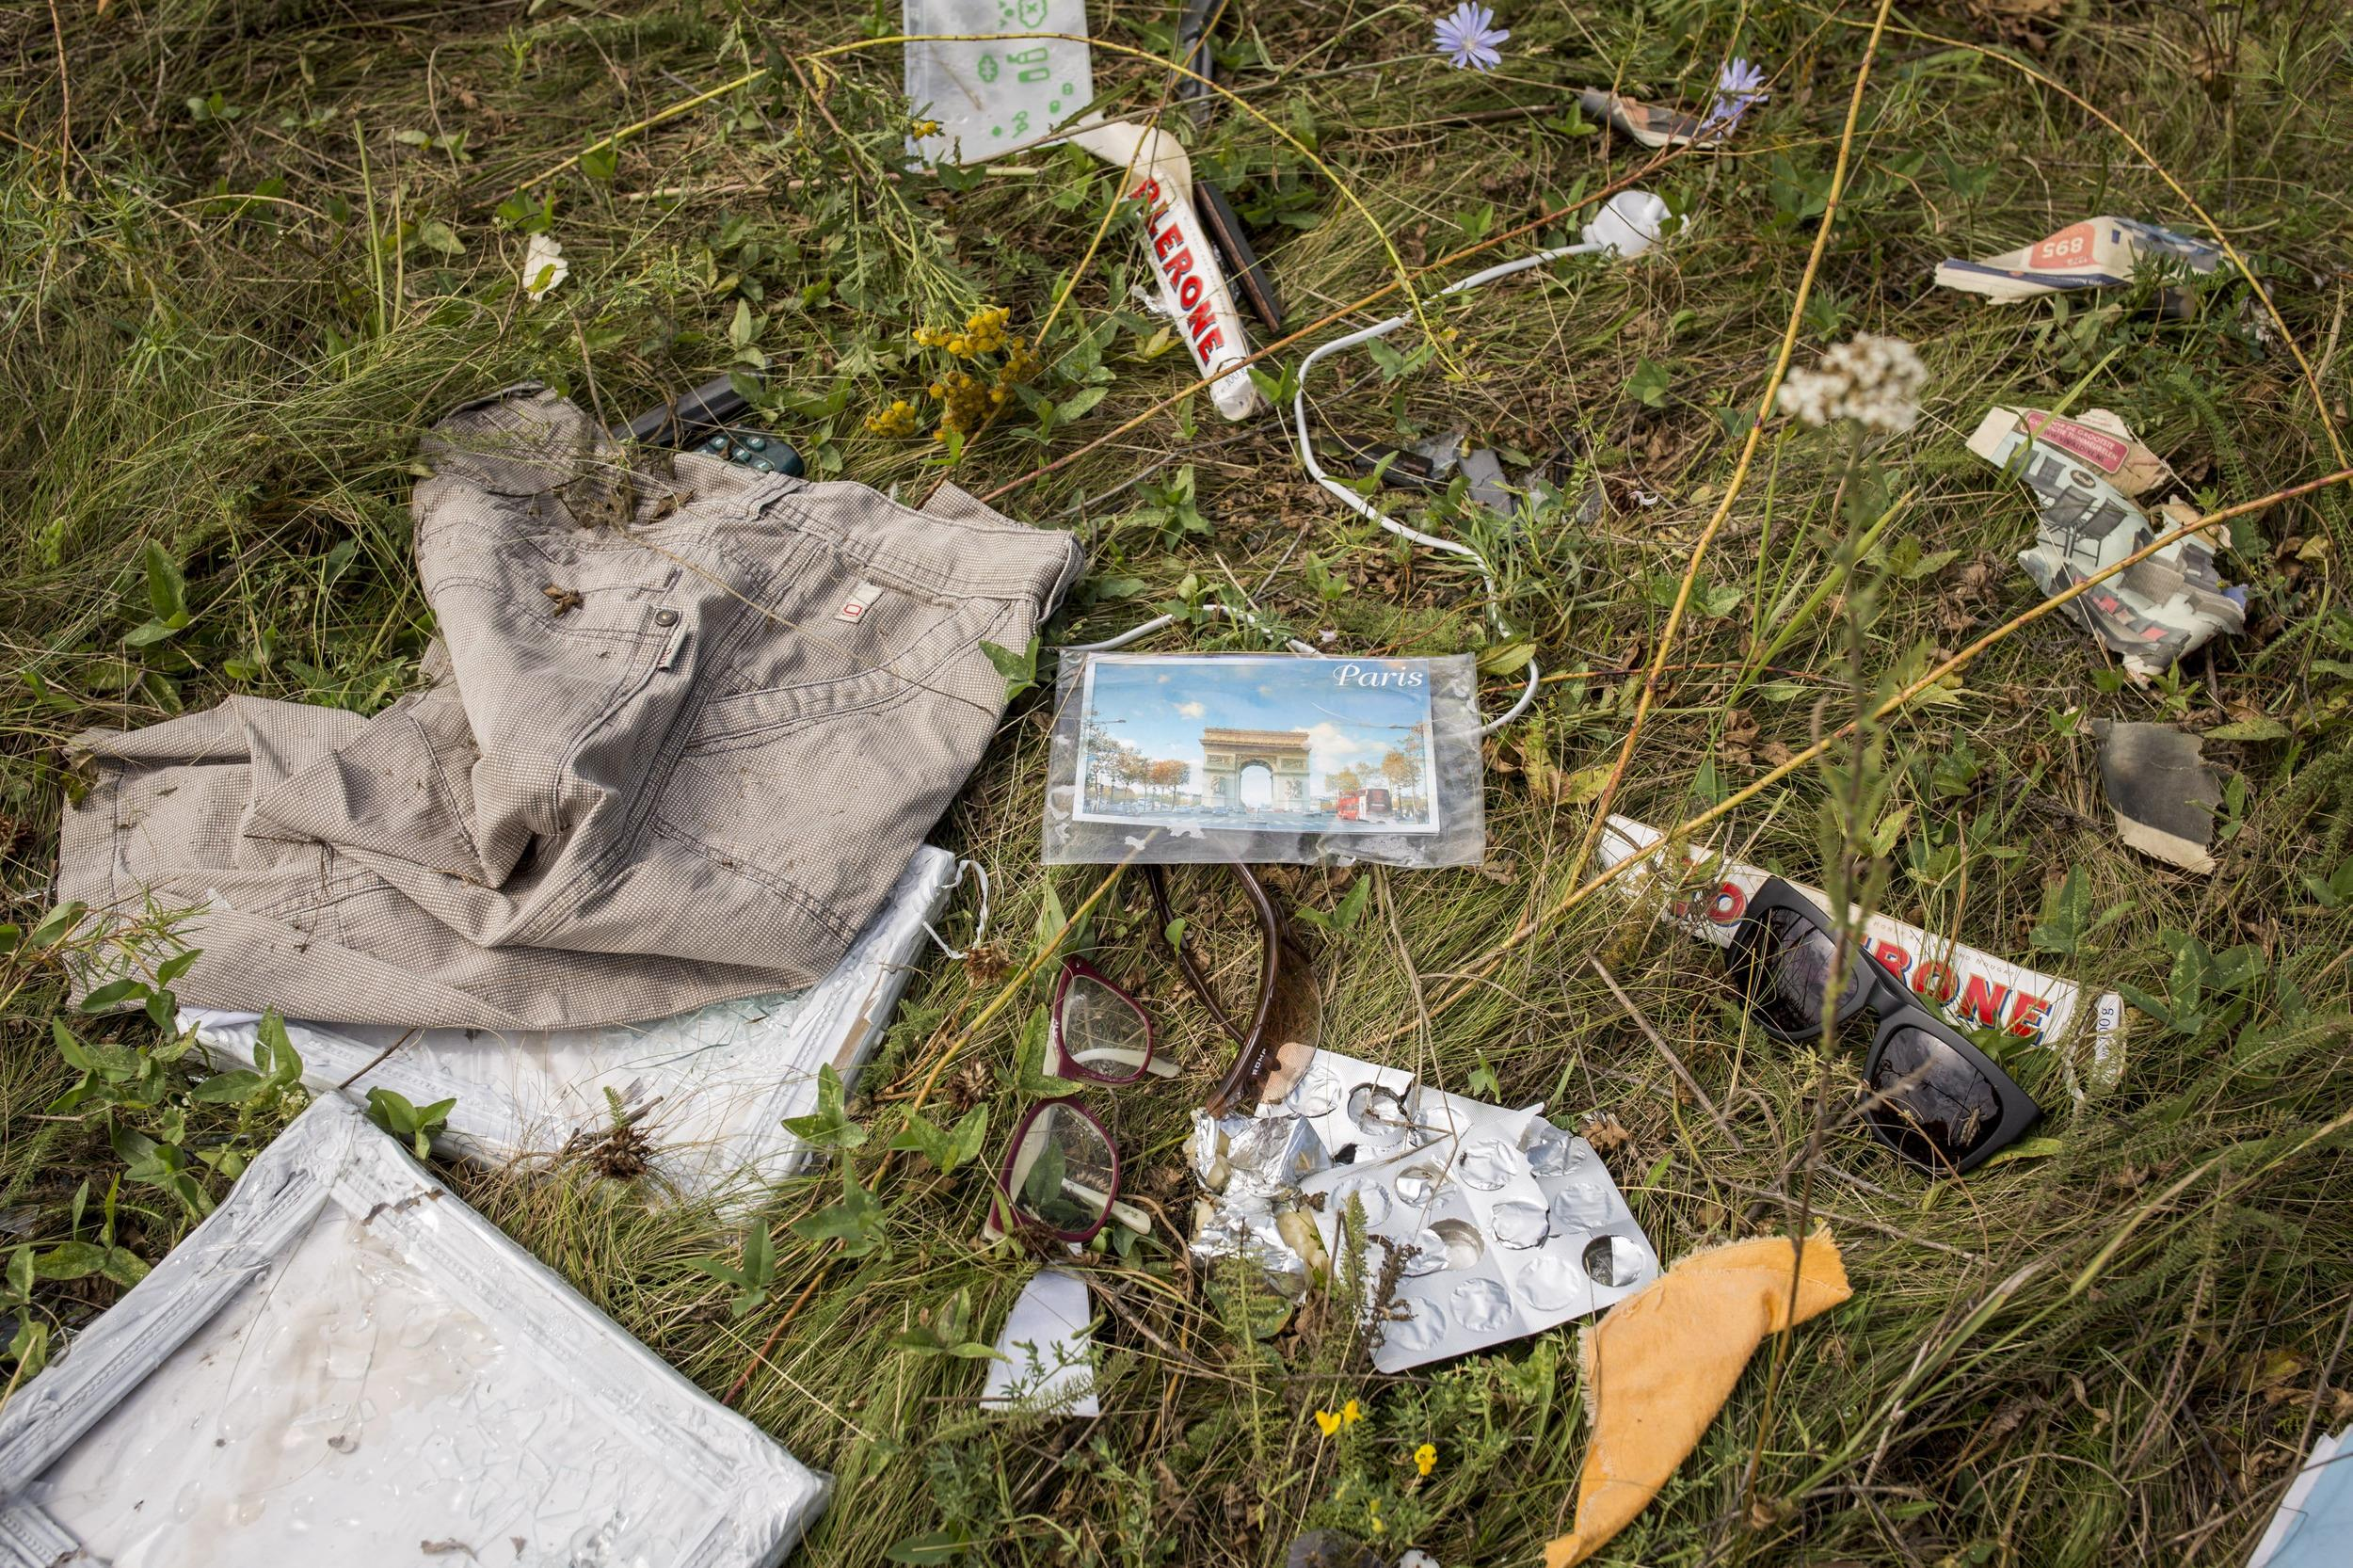 Image: 298 Crew And Passengers Perish On Flight MH17 After Suspected Missile Attack In Ukraine